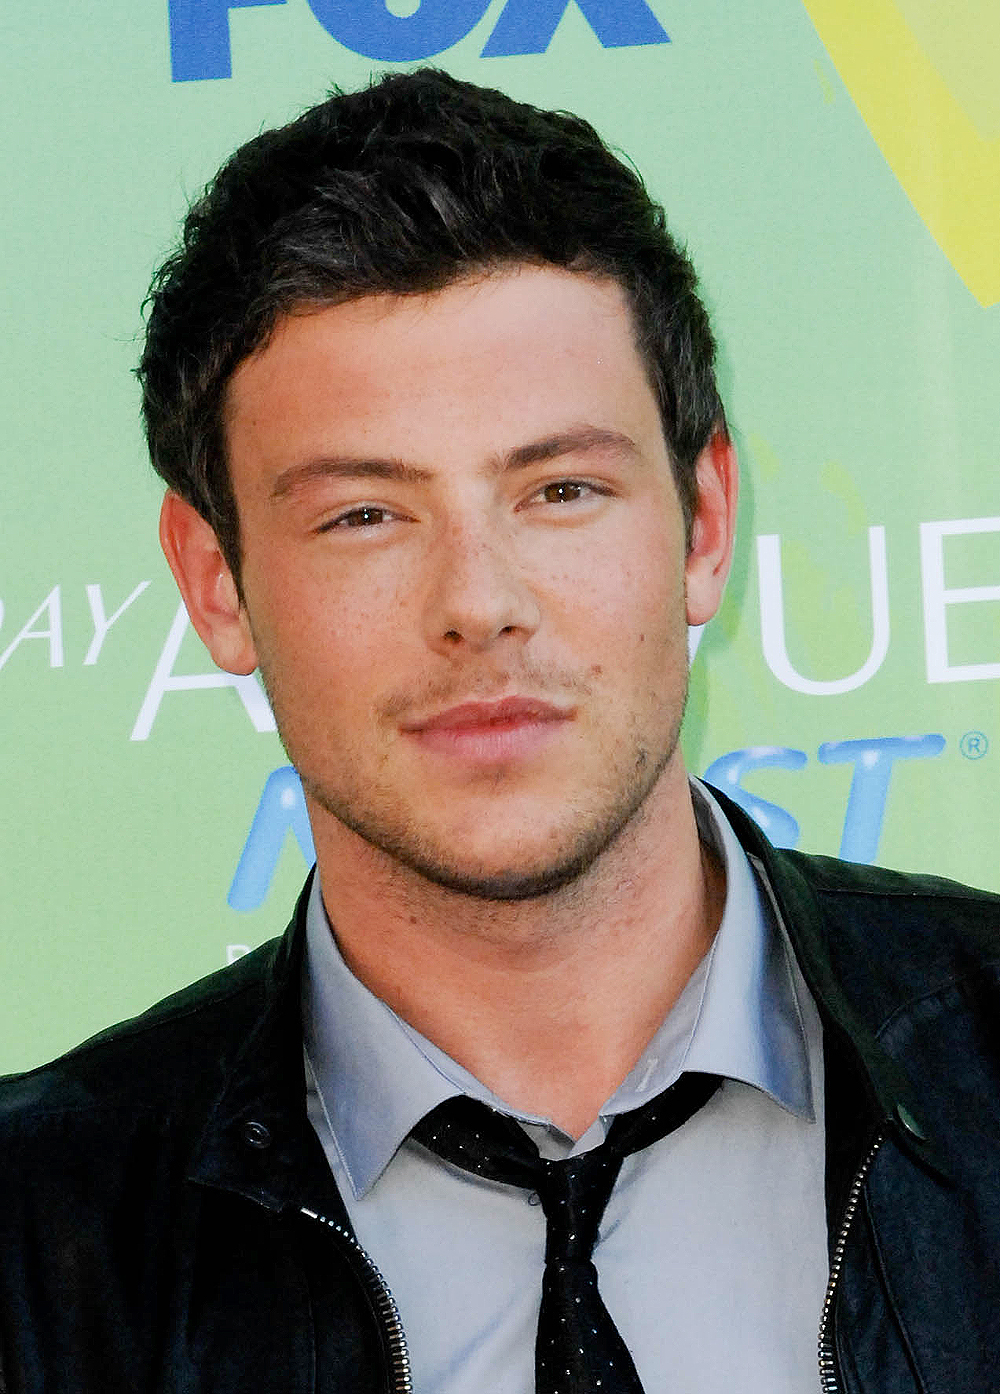 Glee Star Cory Monteith Dies Aged 31 Mxdwn Co Uk